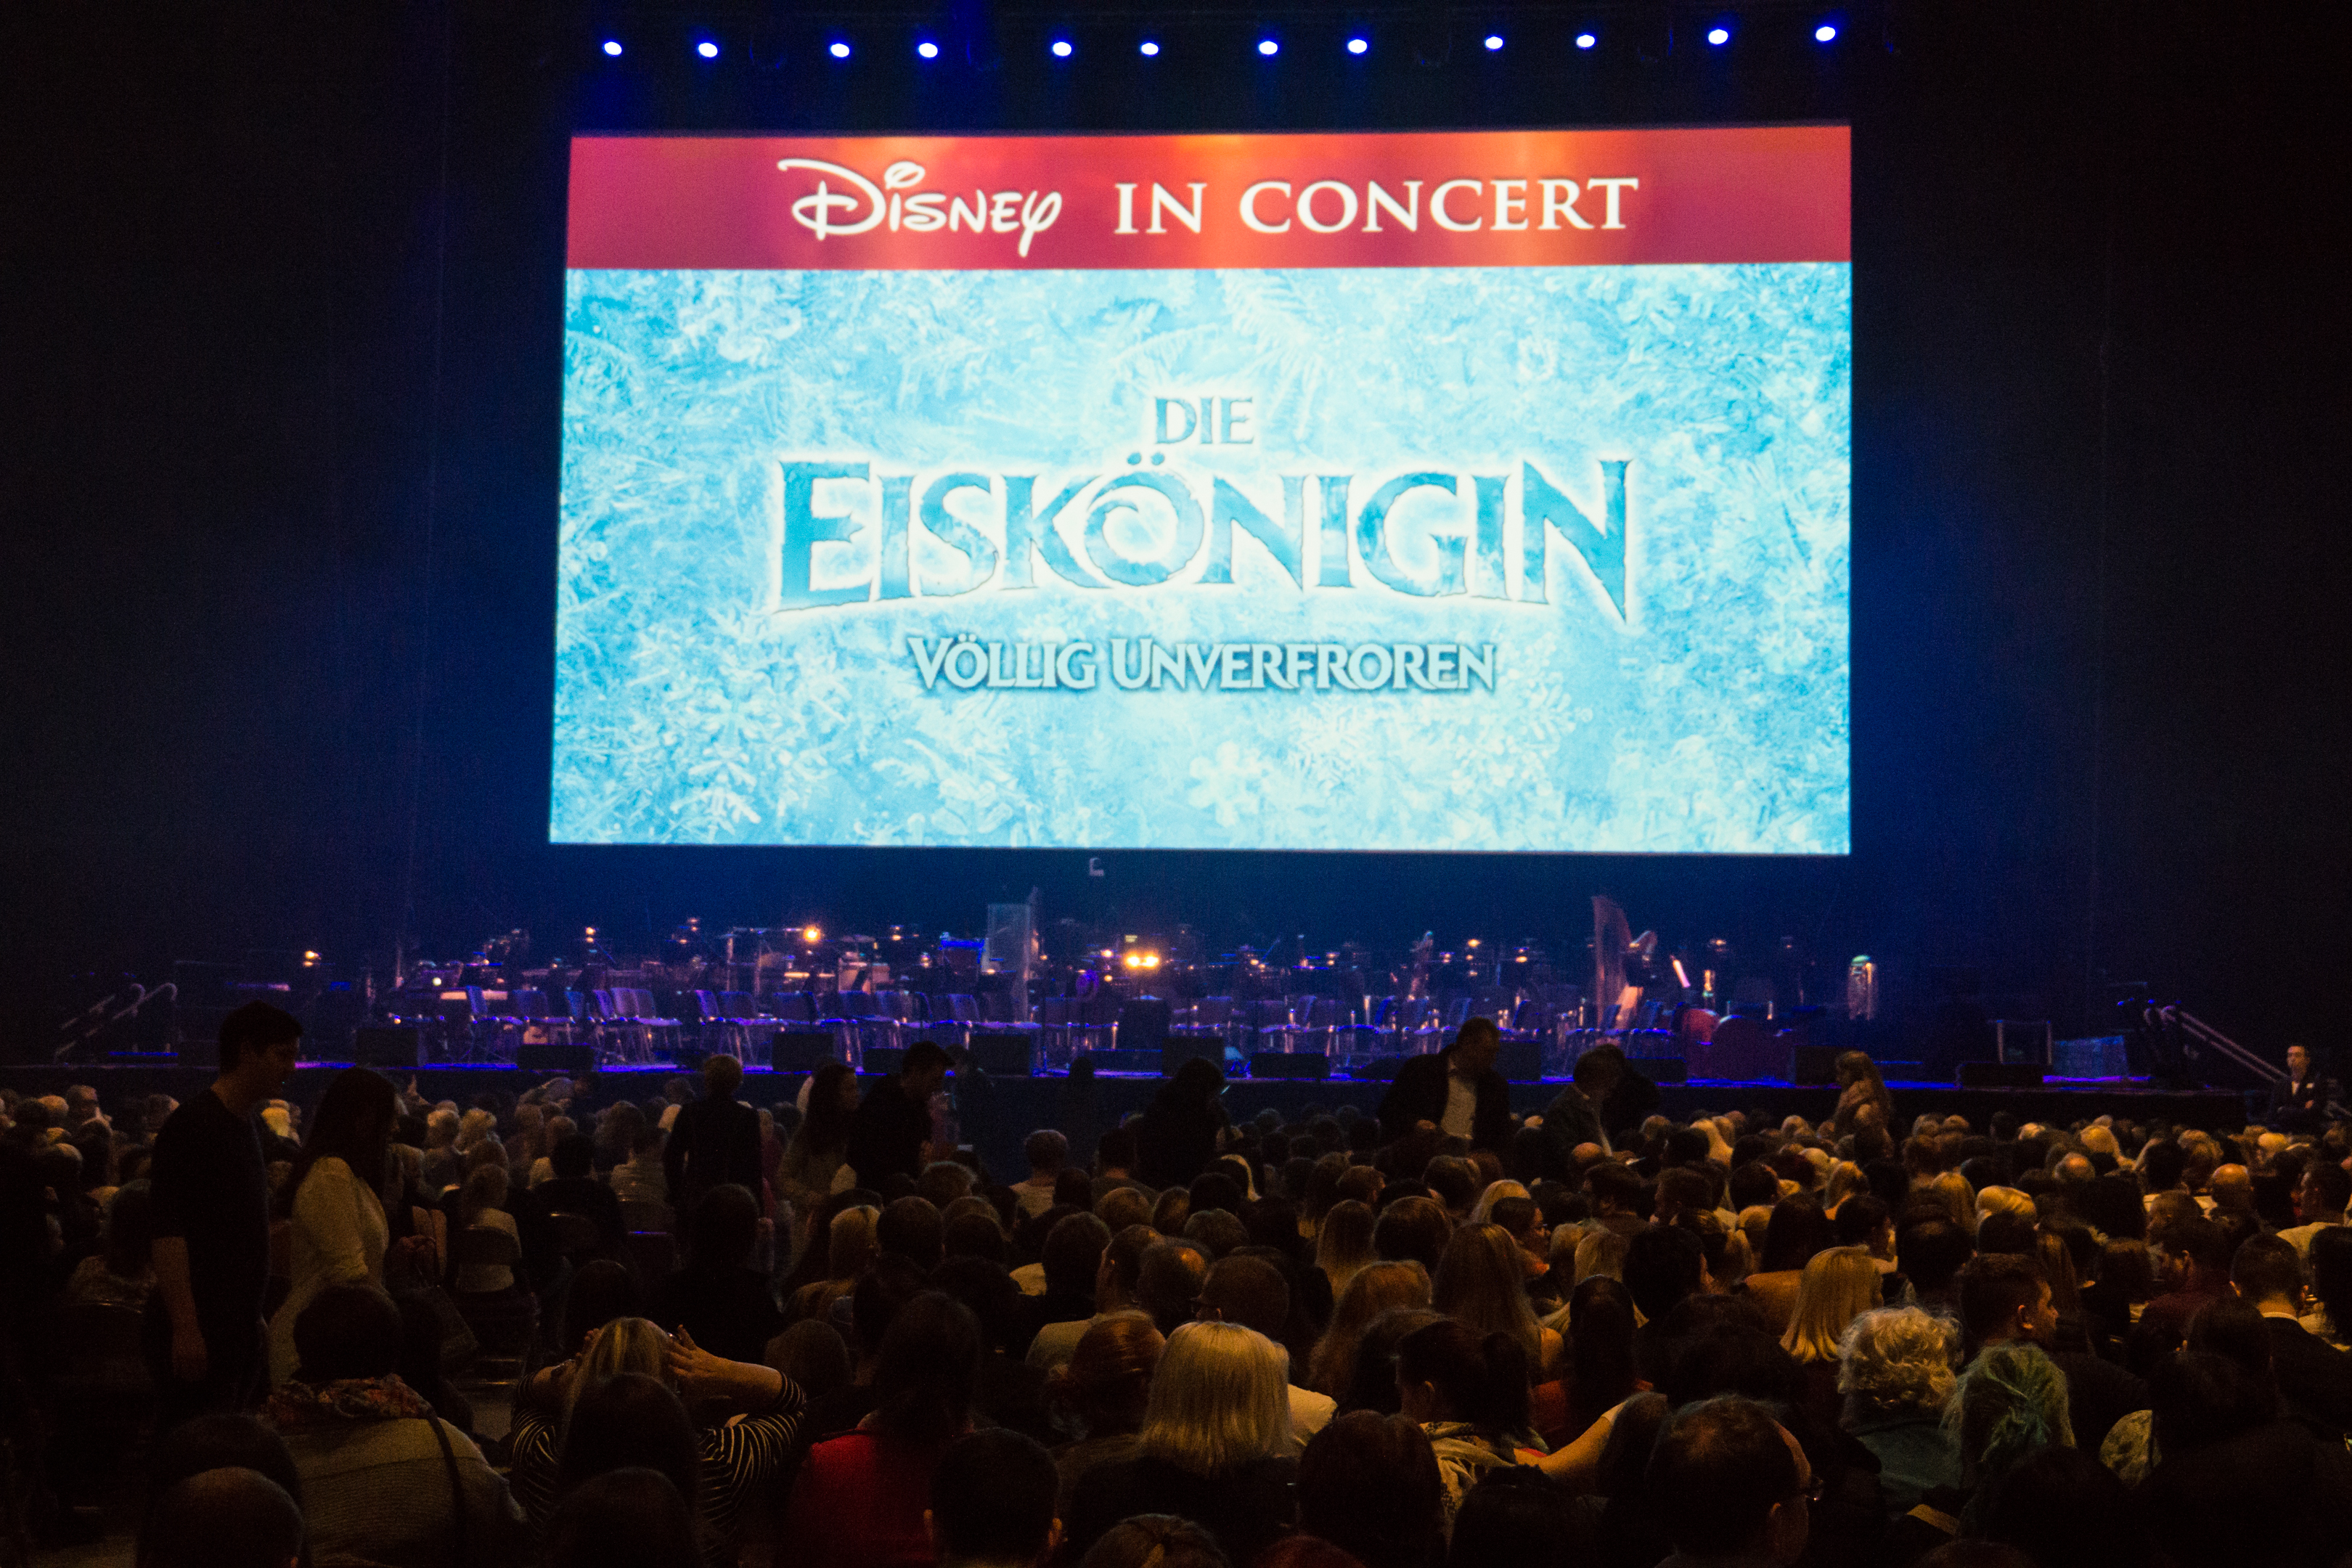 Disney in Concert: Frozen - Die Eiskönigin